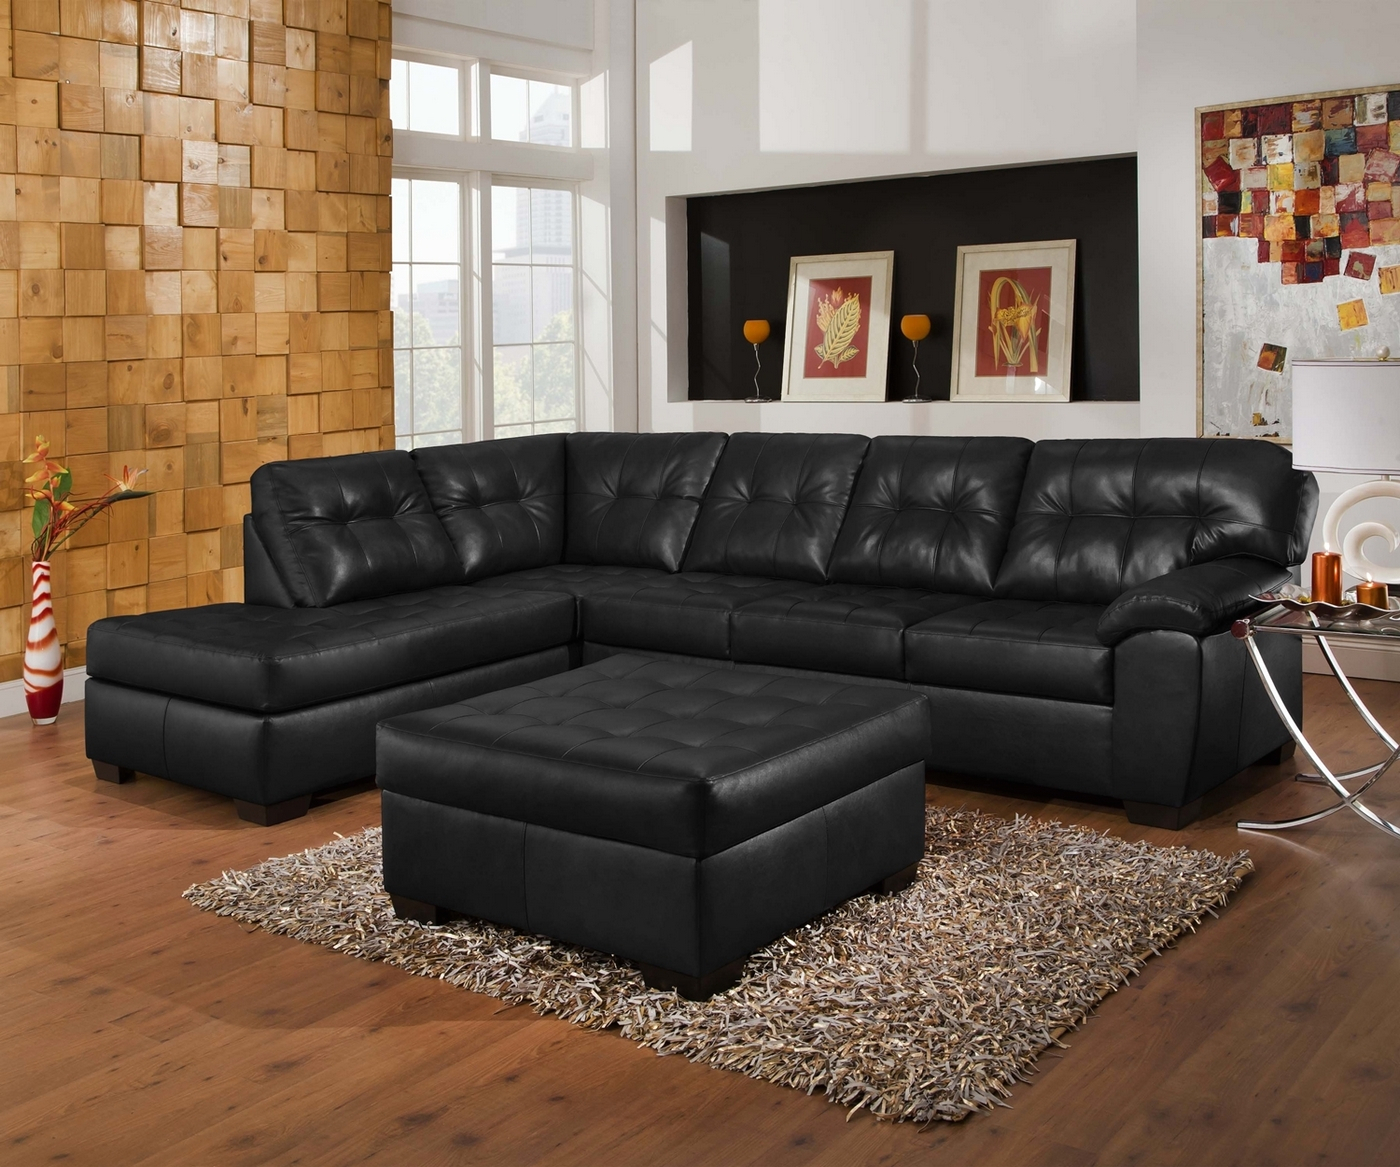 Soho Contemporary Onyx Leather Sectional Sofa W/ Left Chaise Intended For 2Pc Connel Modern Chaise Sectional Sofas Black (View 10 of 15)